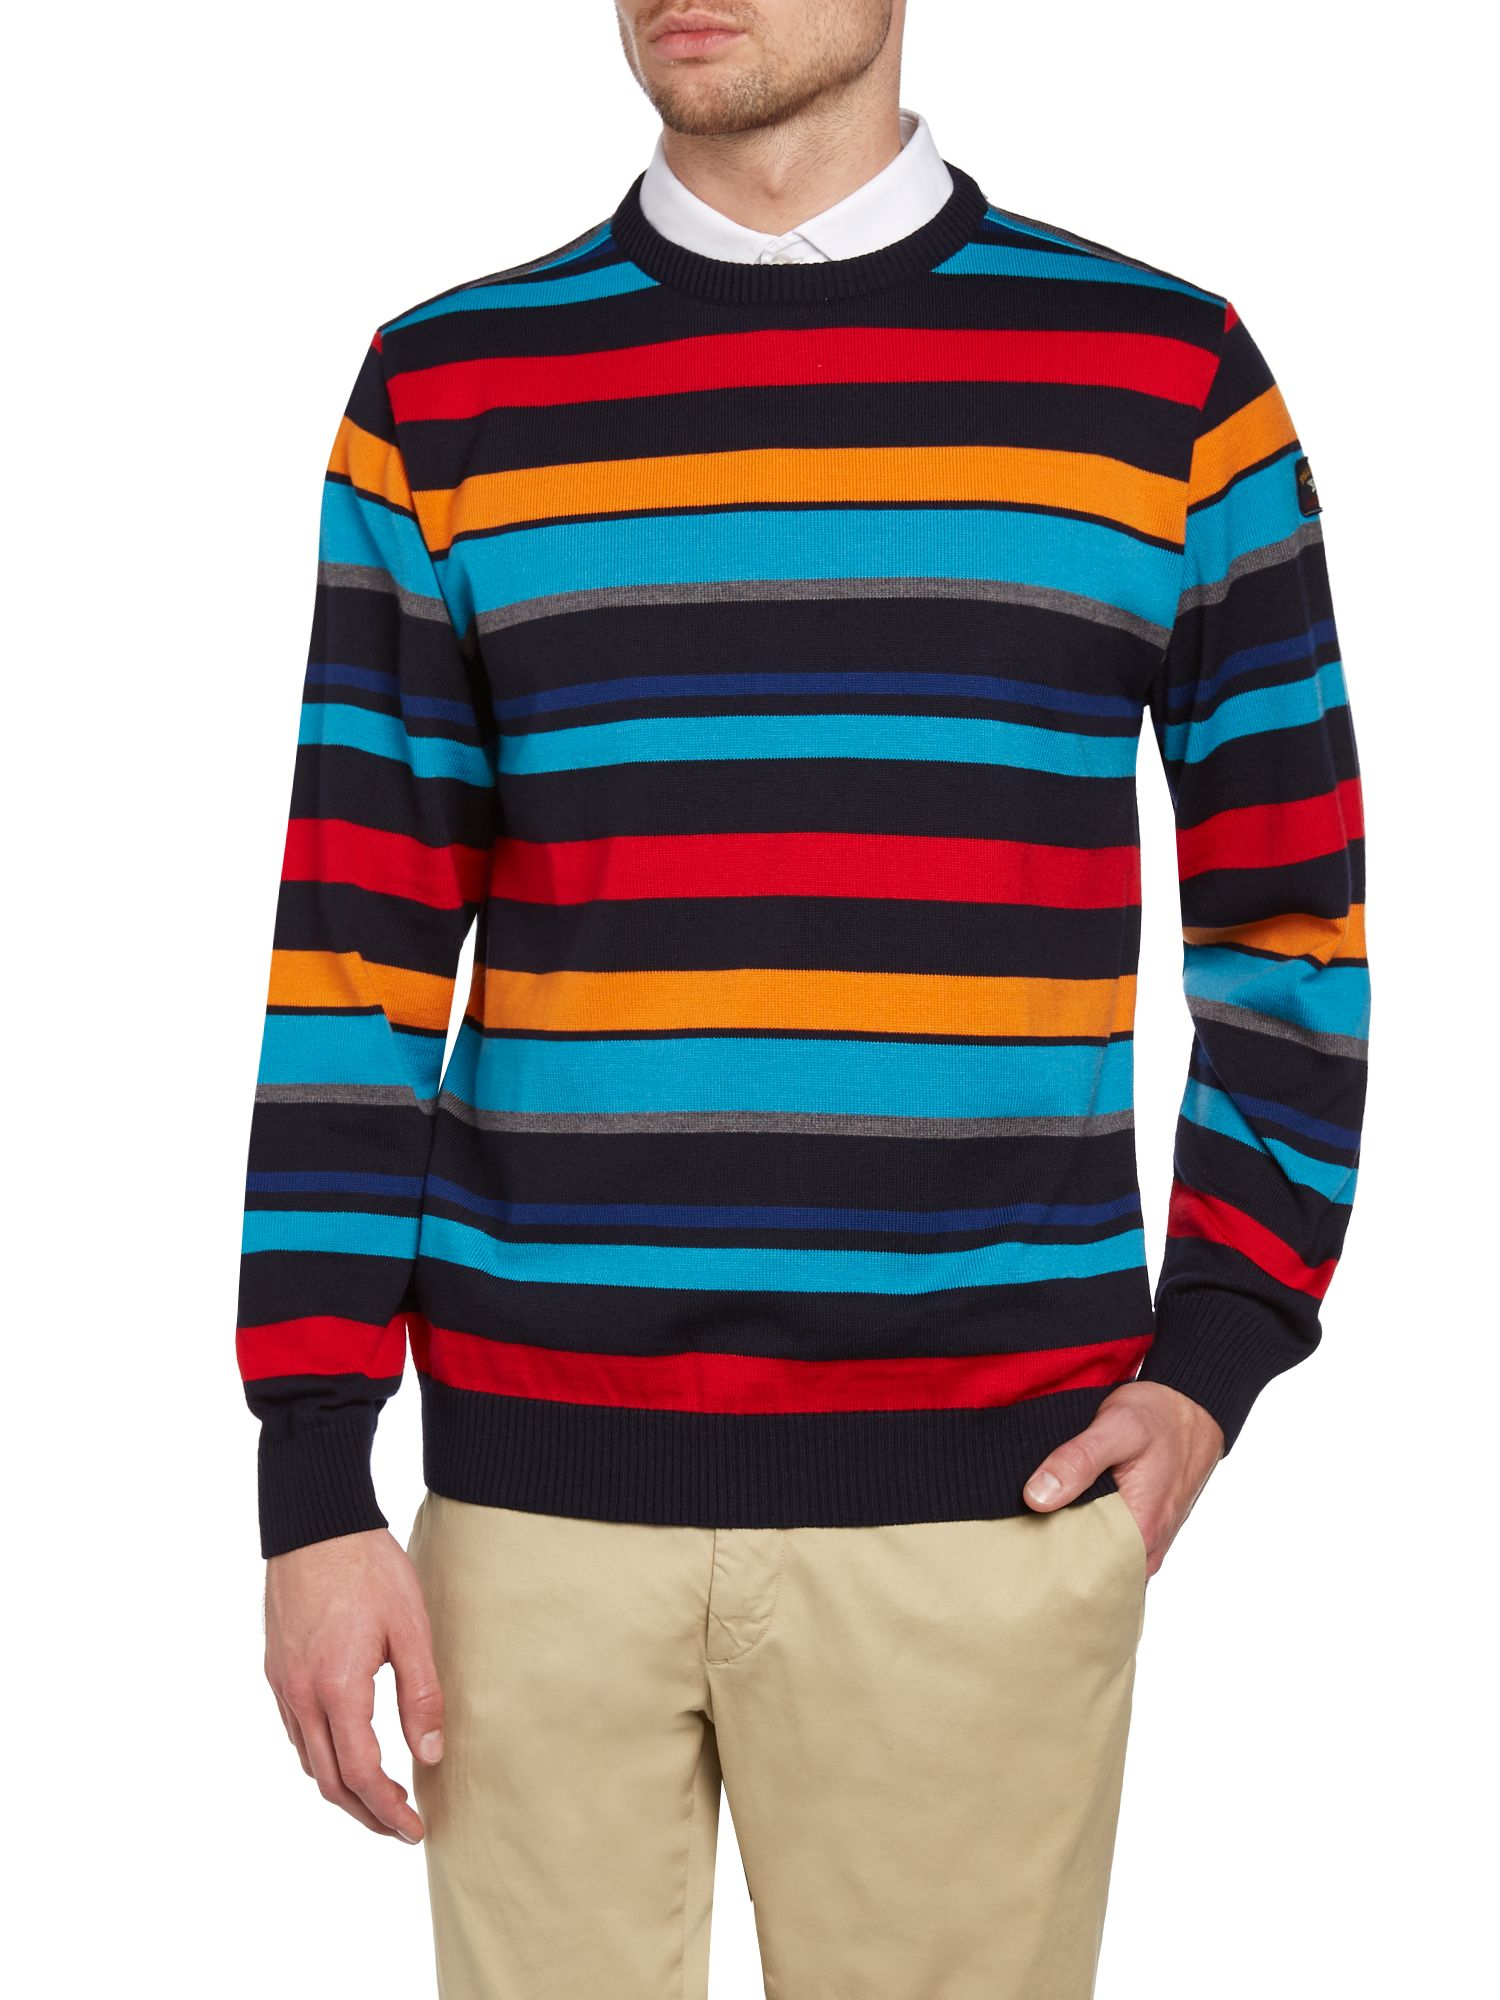 Paul & Shark multi stripe knit